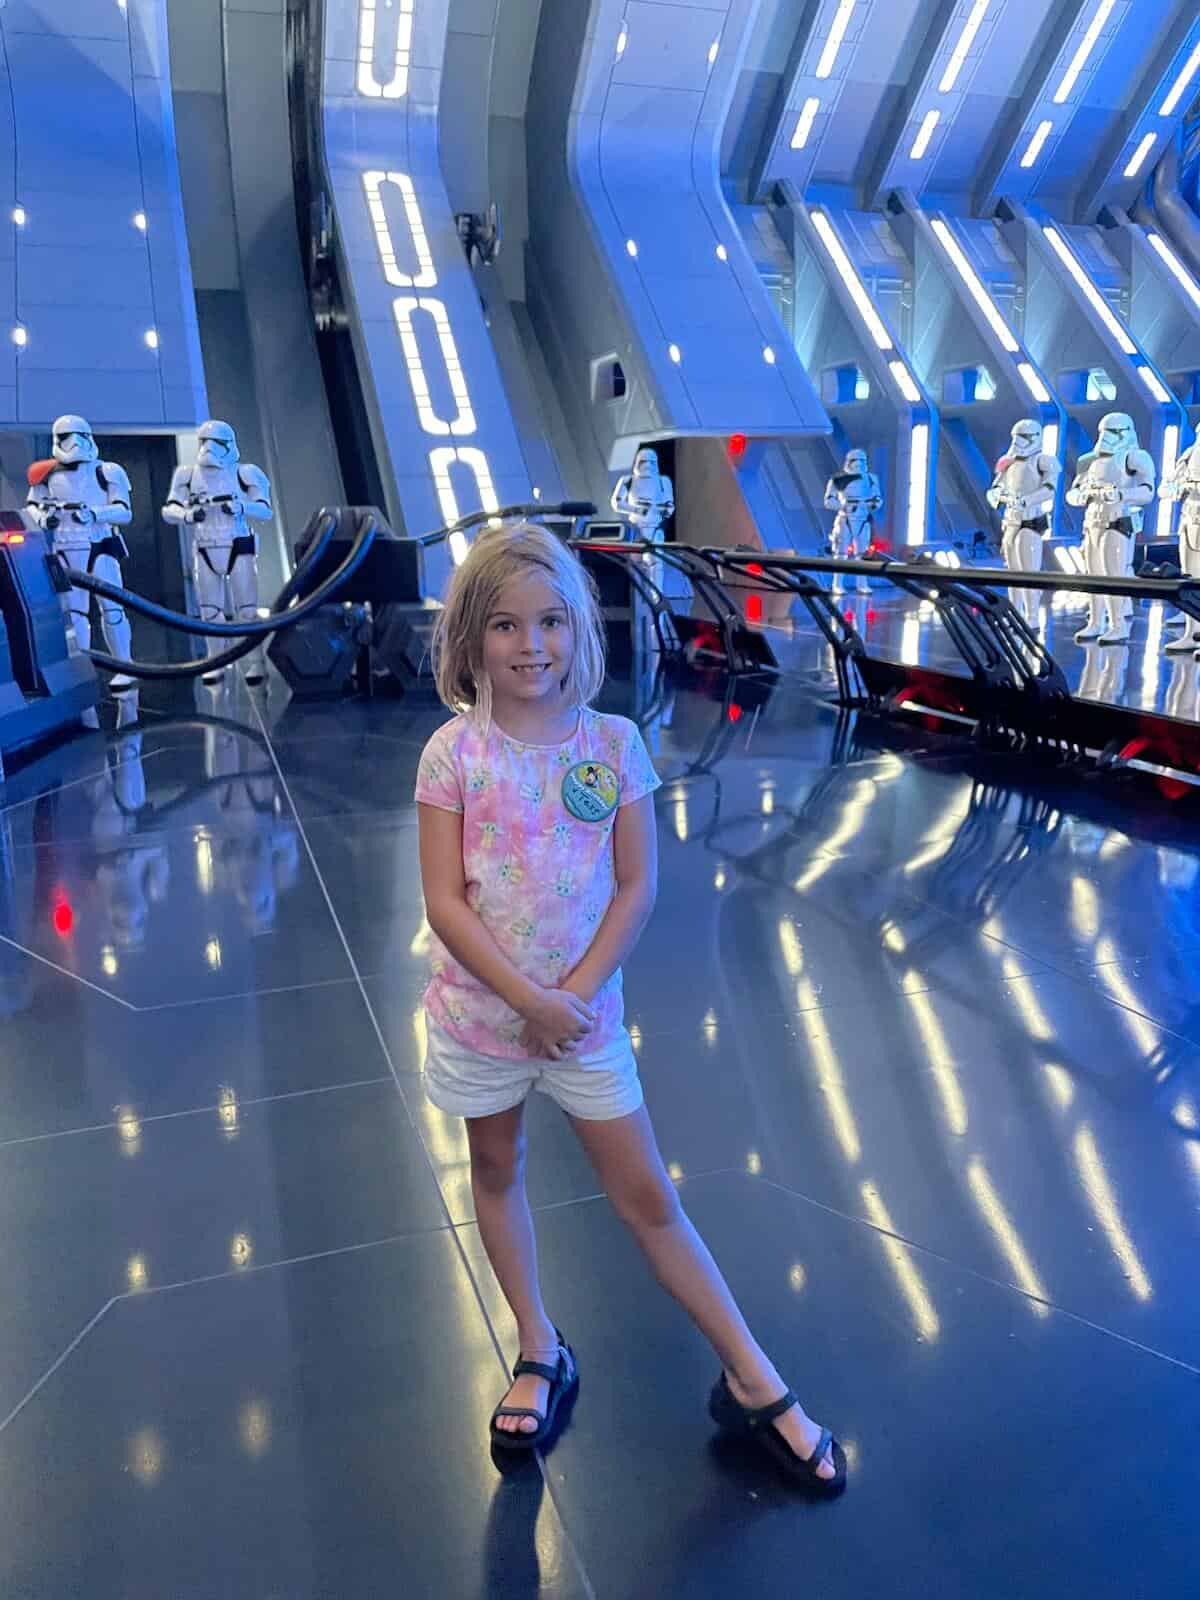 Hollywood Studios Star Wars land height restrictions